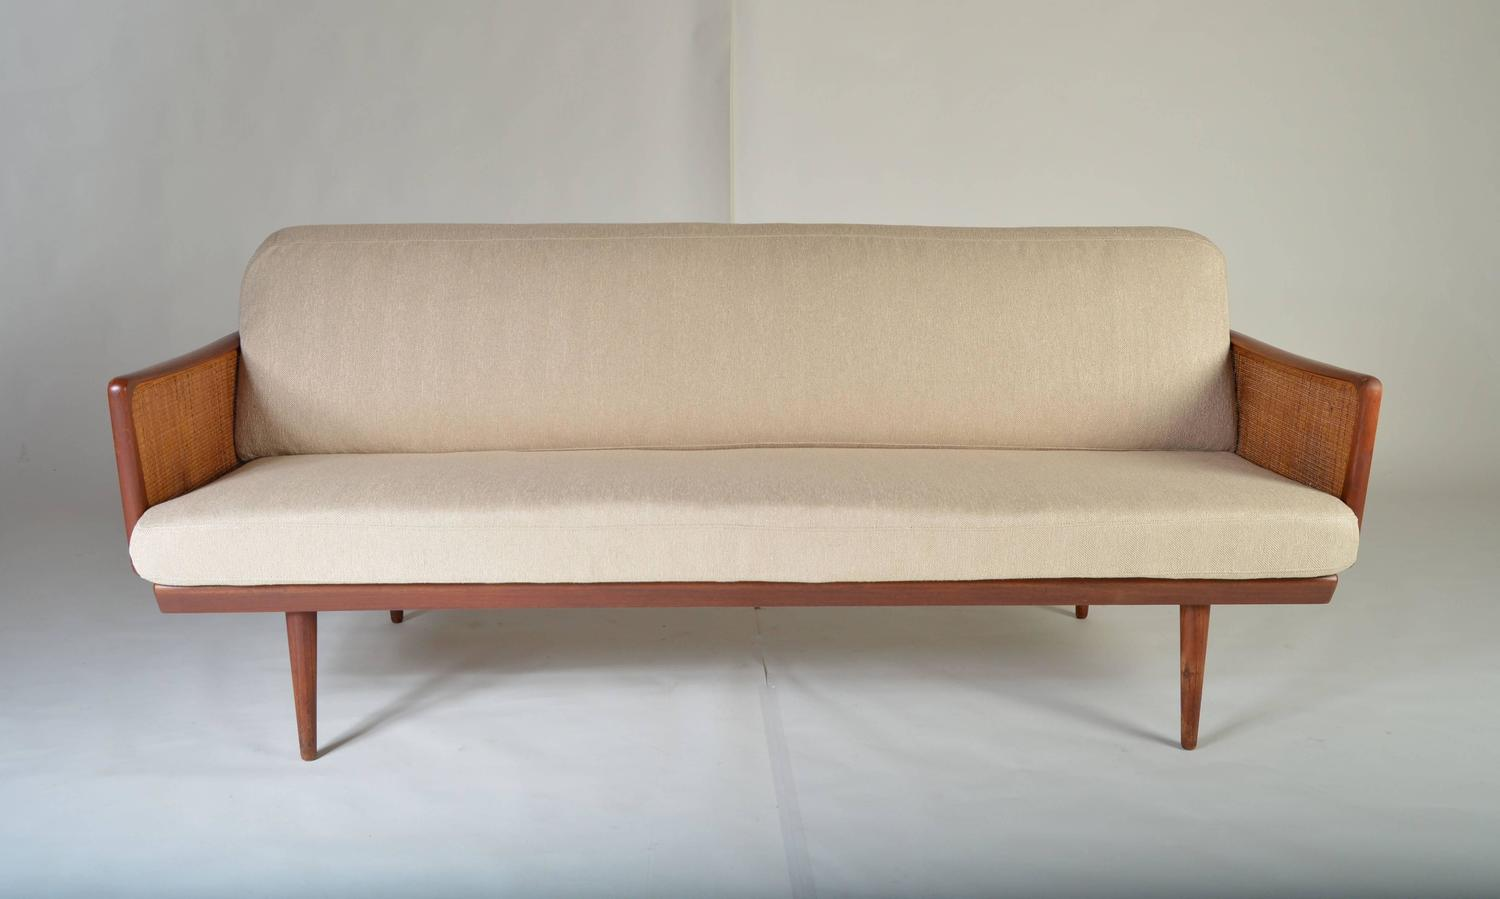 Danish Modern Teak And Cane Sofa By Peter Hvidt At 1stdibs